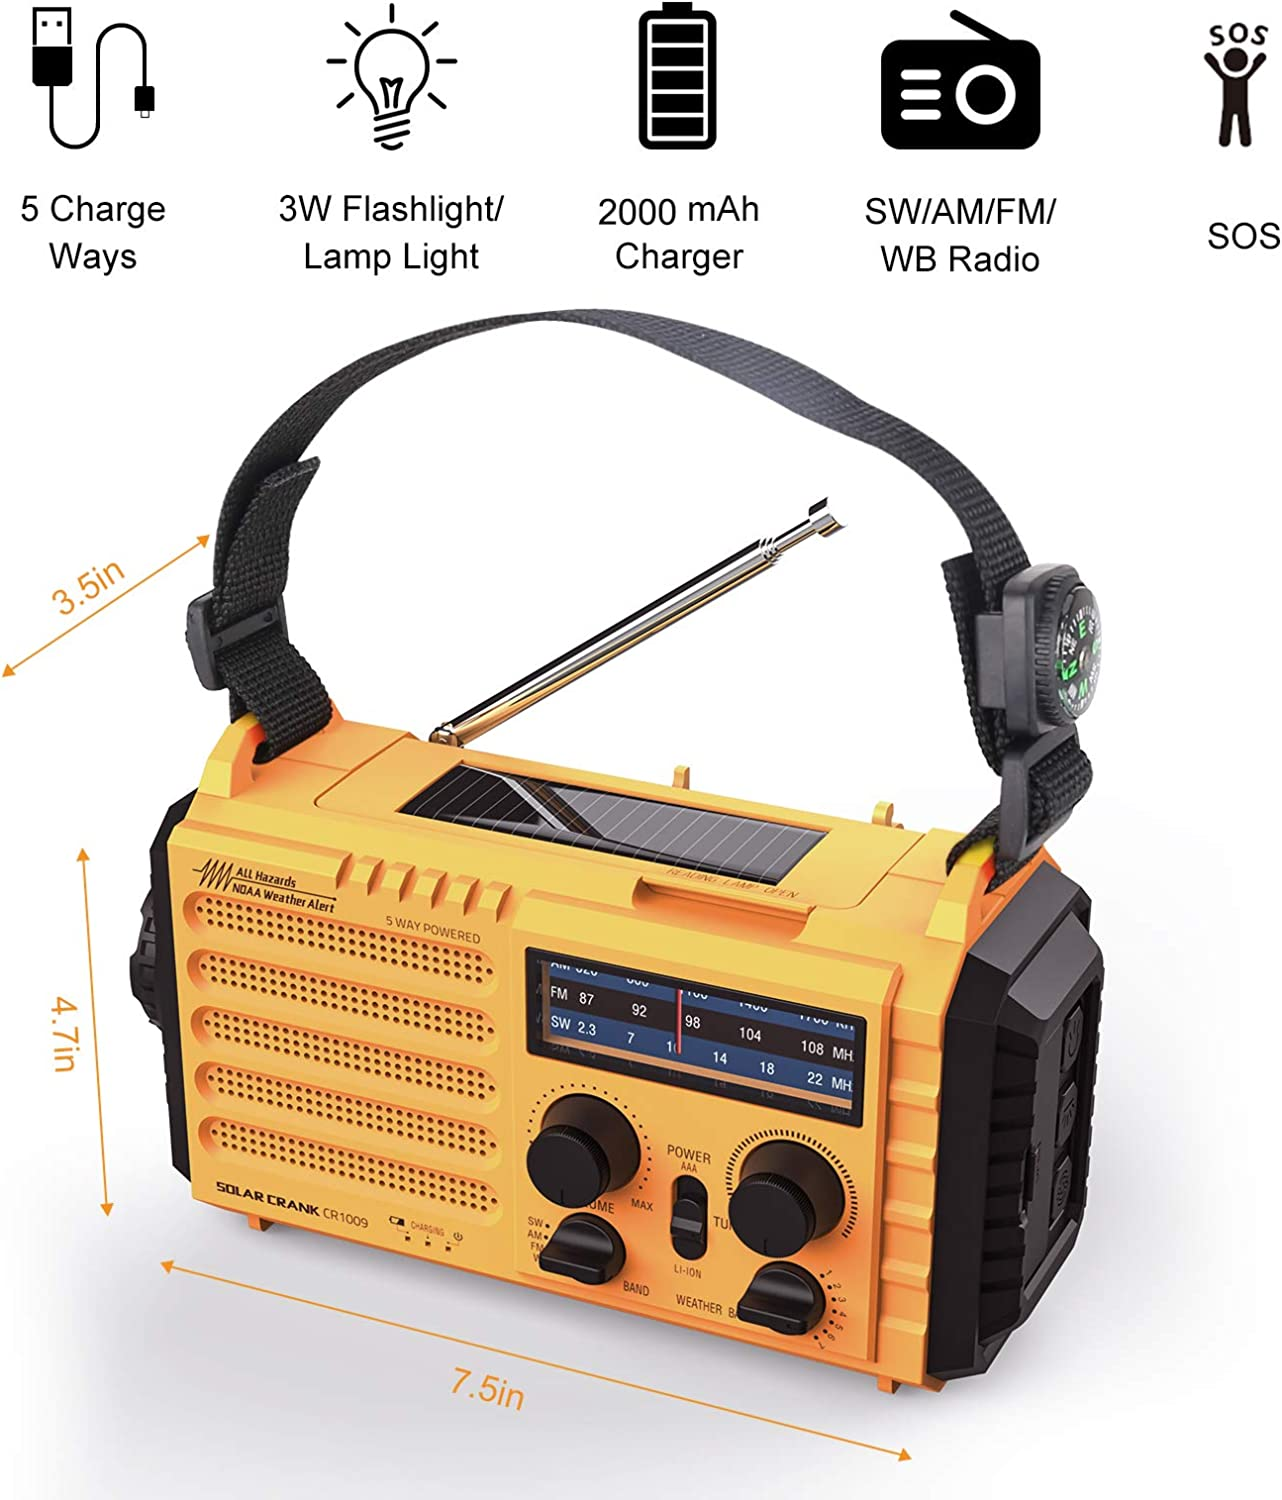 Weather Radio Raynic Solar Hand Crank Emergency Radio 5 Ways Powered AM/FM/SW/NOAA Weather Alert Portable Radio with Flashlight, Reading Lamp, Cellphone Charger and SOS Alarm (Yellow): Home Audio & Theater